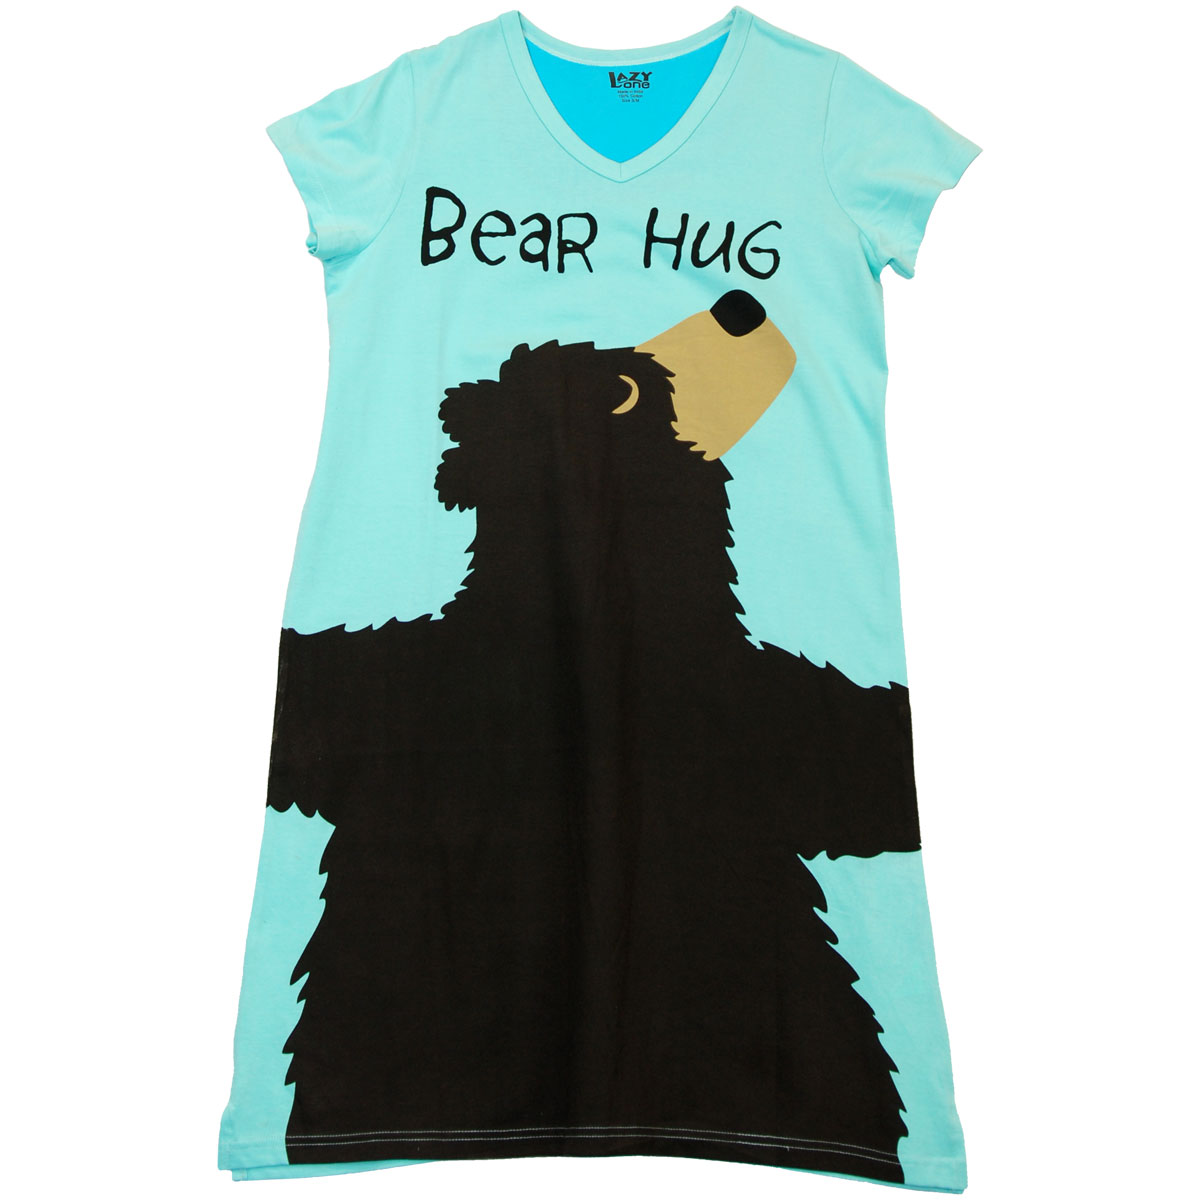 Nightshirt - Bear Hug